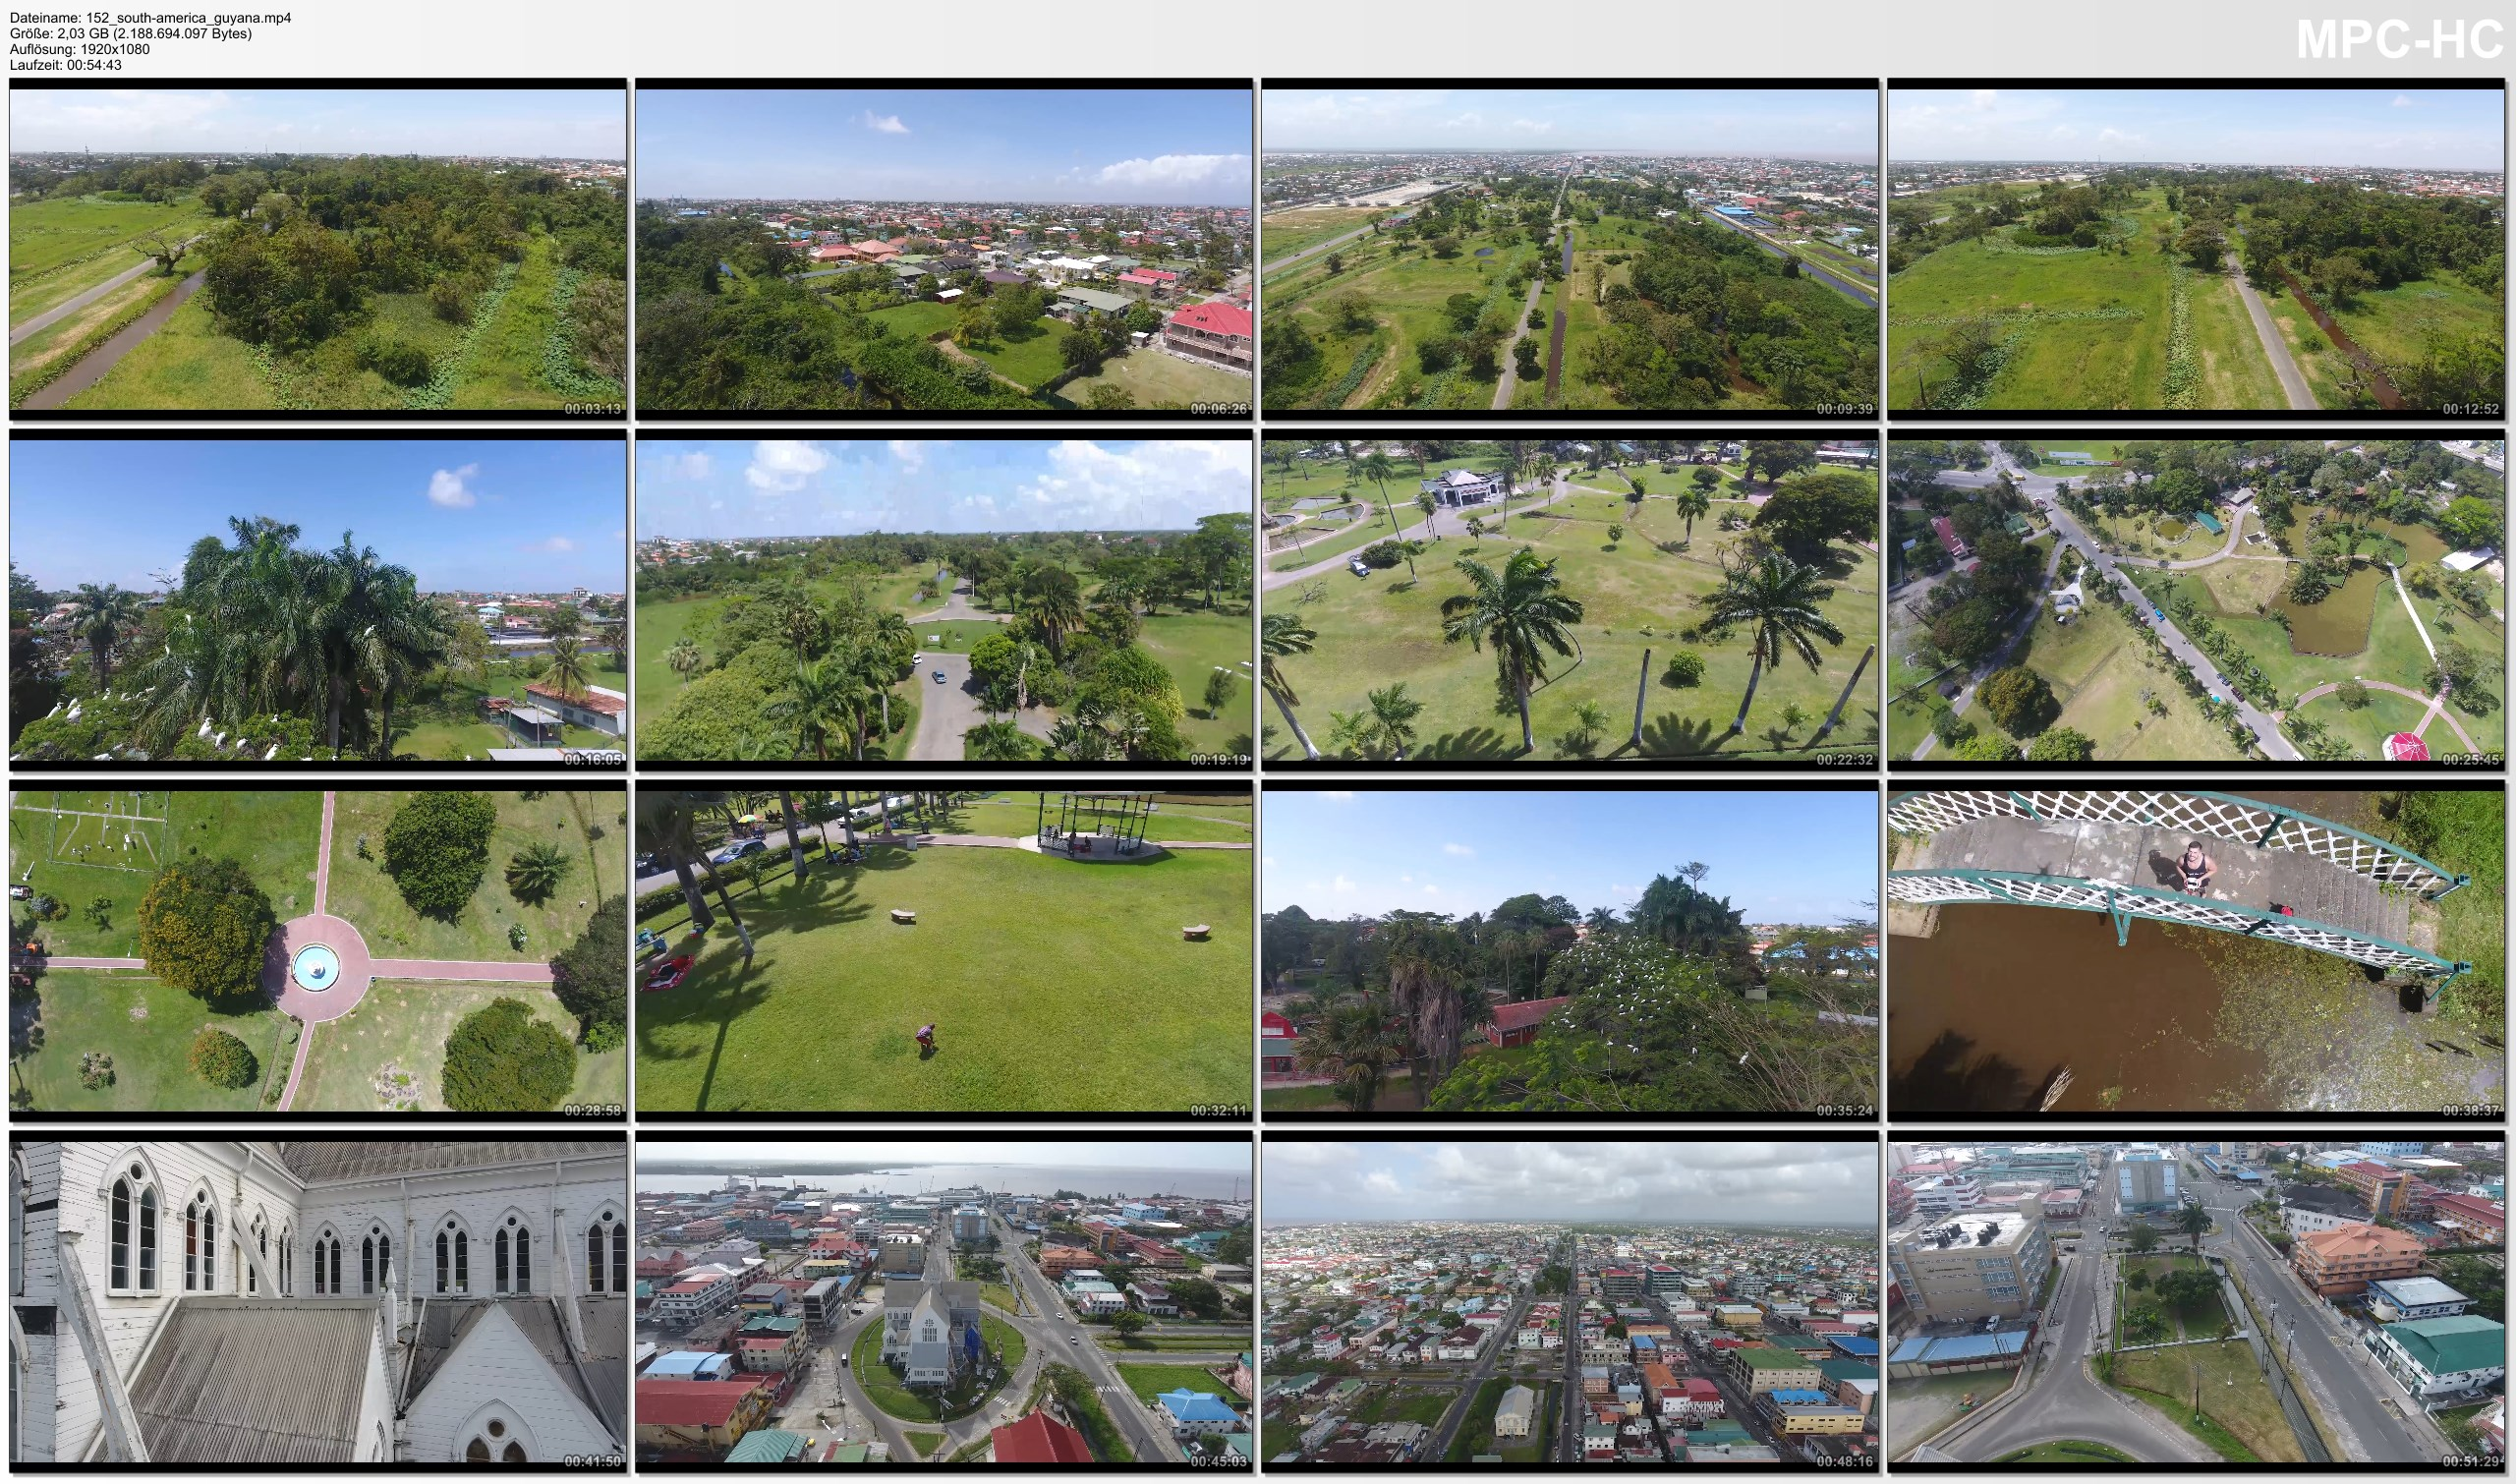 Drone Pictures from Video 【4K】Drone RAW Footage | GUYANA 2019 ..:: Georgetown | UltraHD Stock Video